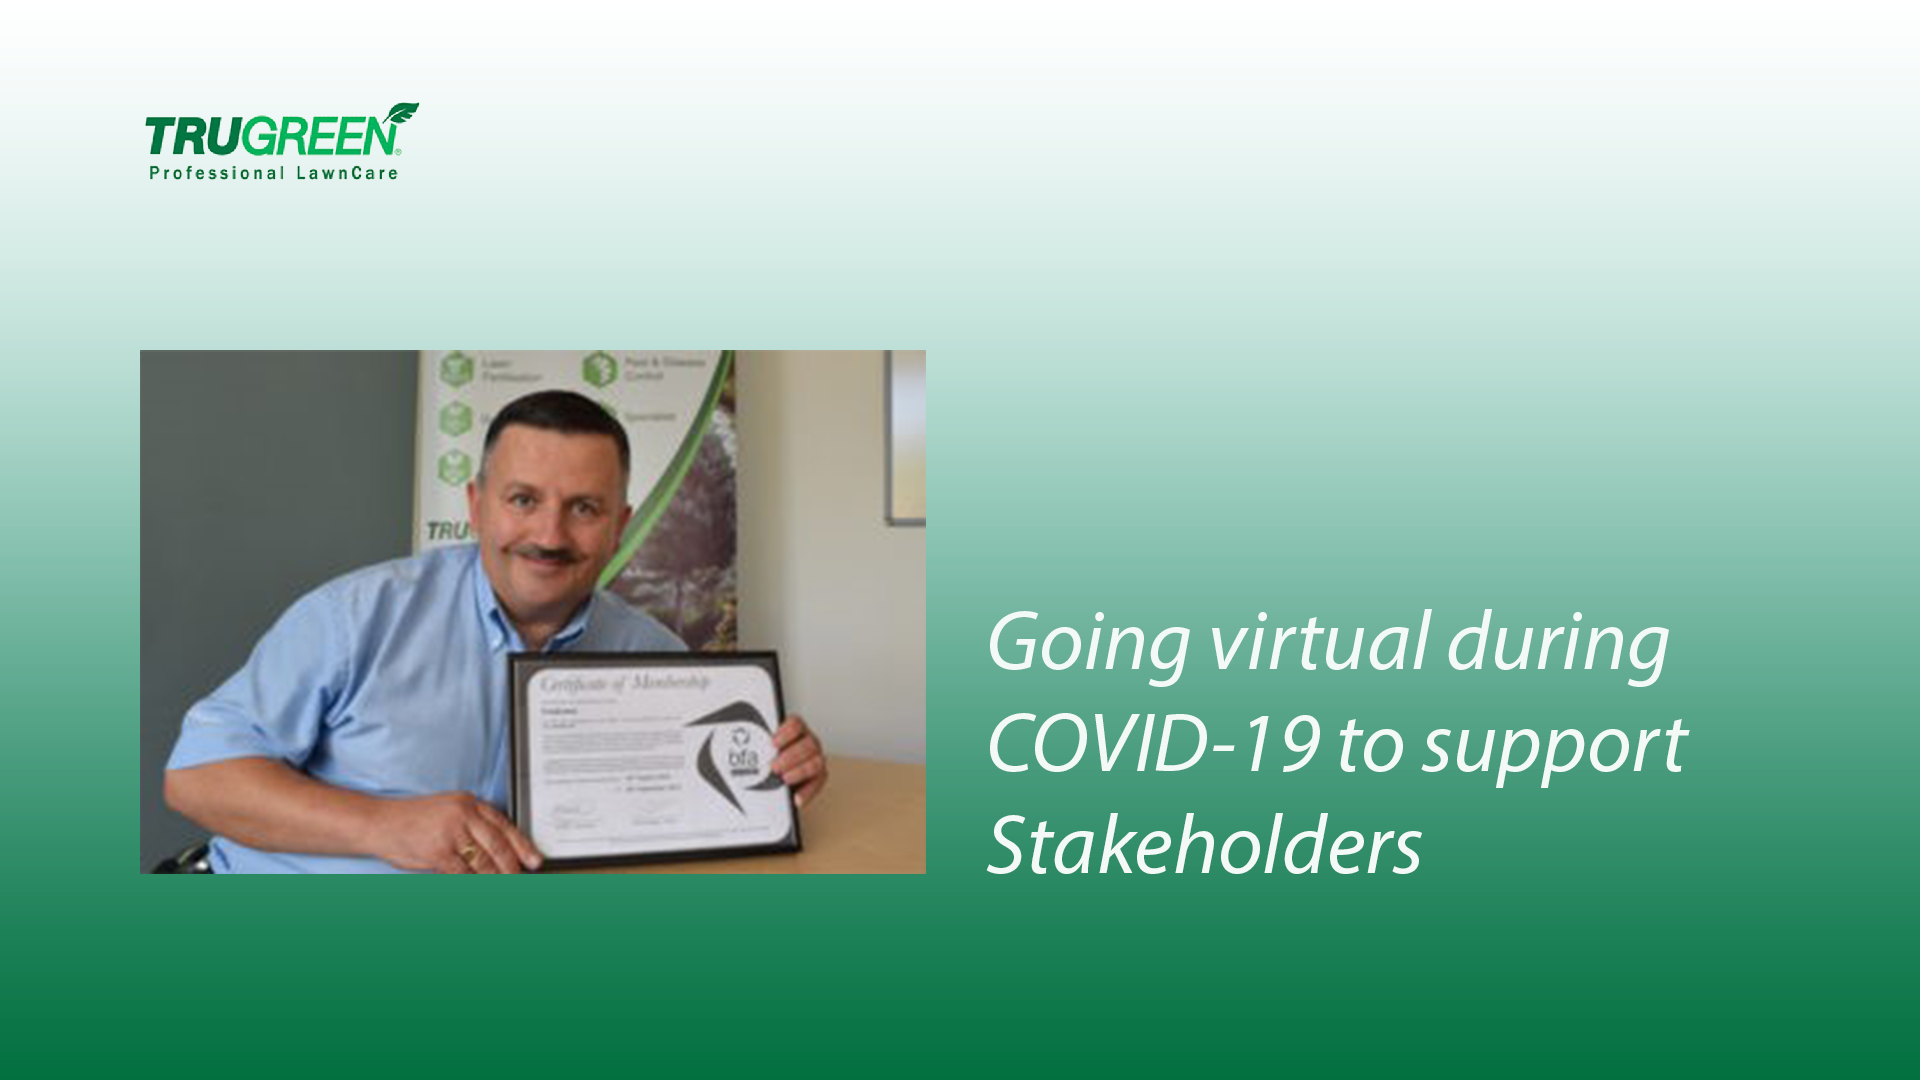 TruGreen Professional Lawncare is proud to announce its positive step into the world of revolutionised working by going completely virtual during the COVID-19 pandemic to support its stakeholders.